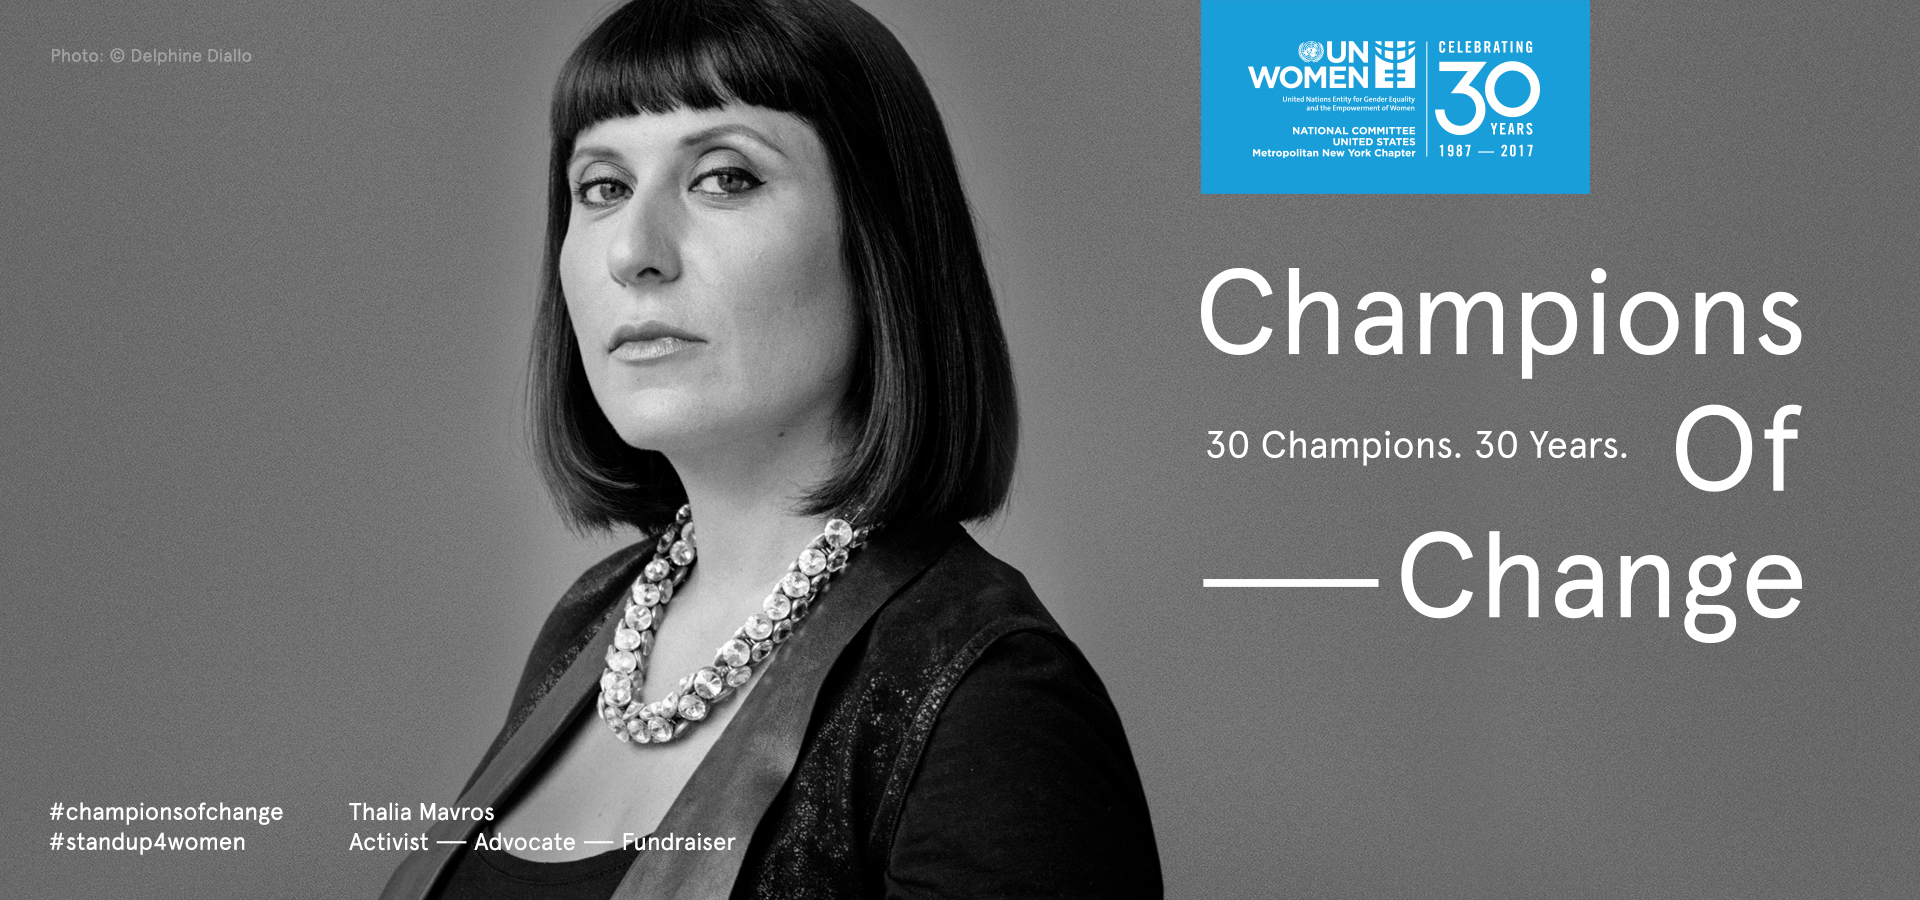 Copy of 2017_UNWomen_ChampionsOfChange_Website_LandingPage_6_Thalia.png